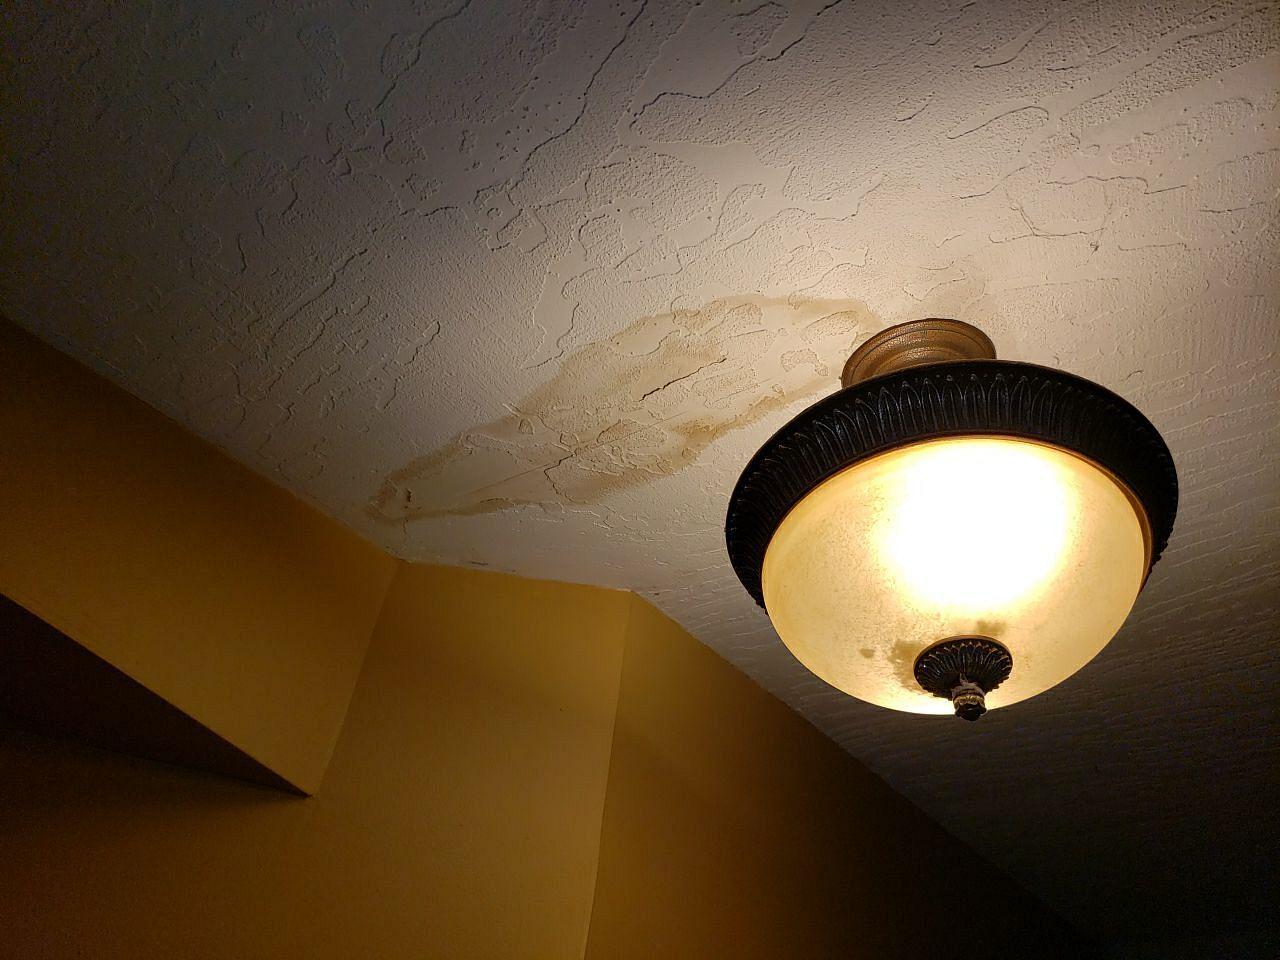 dark spots on ceiling from water damage